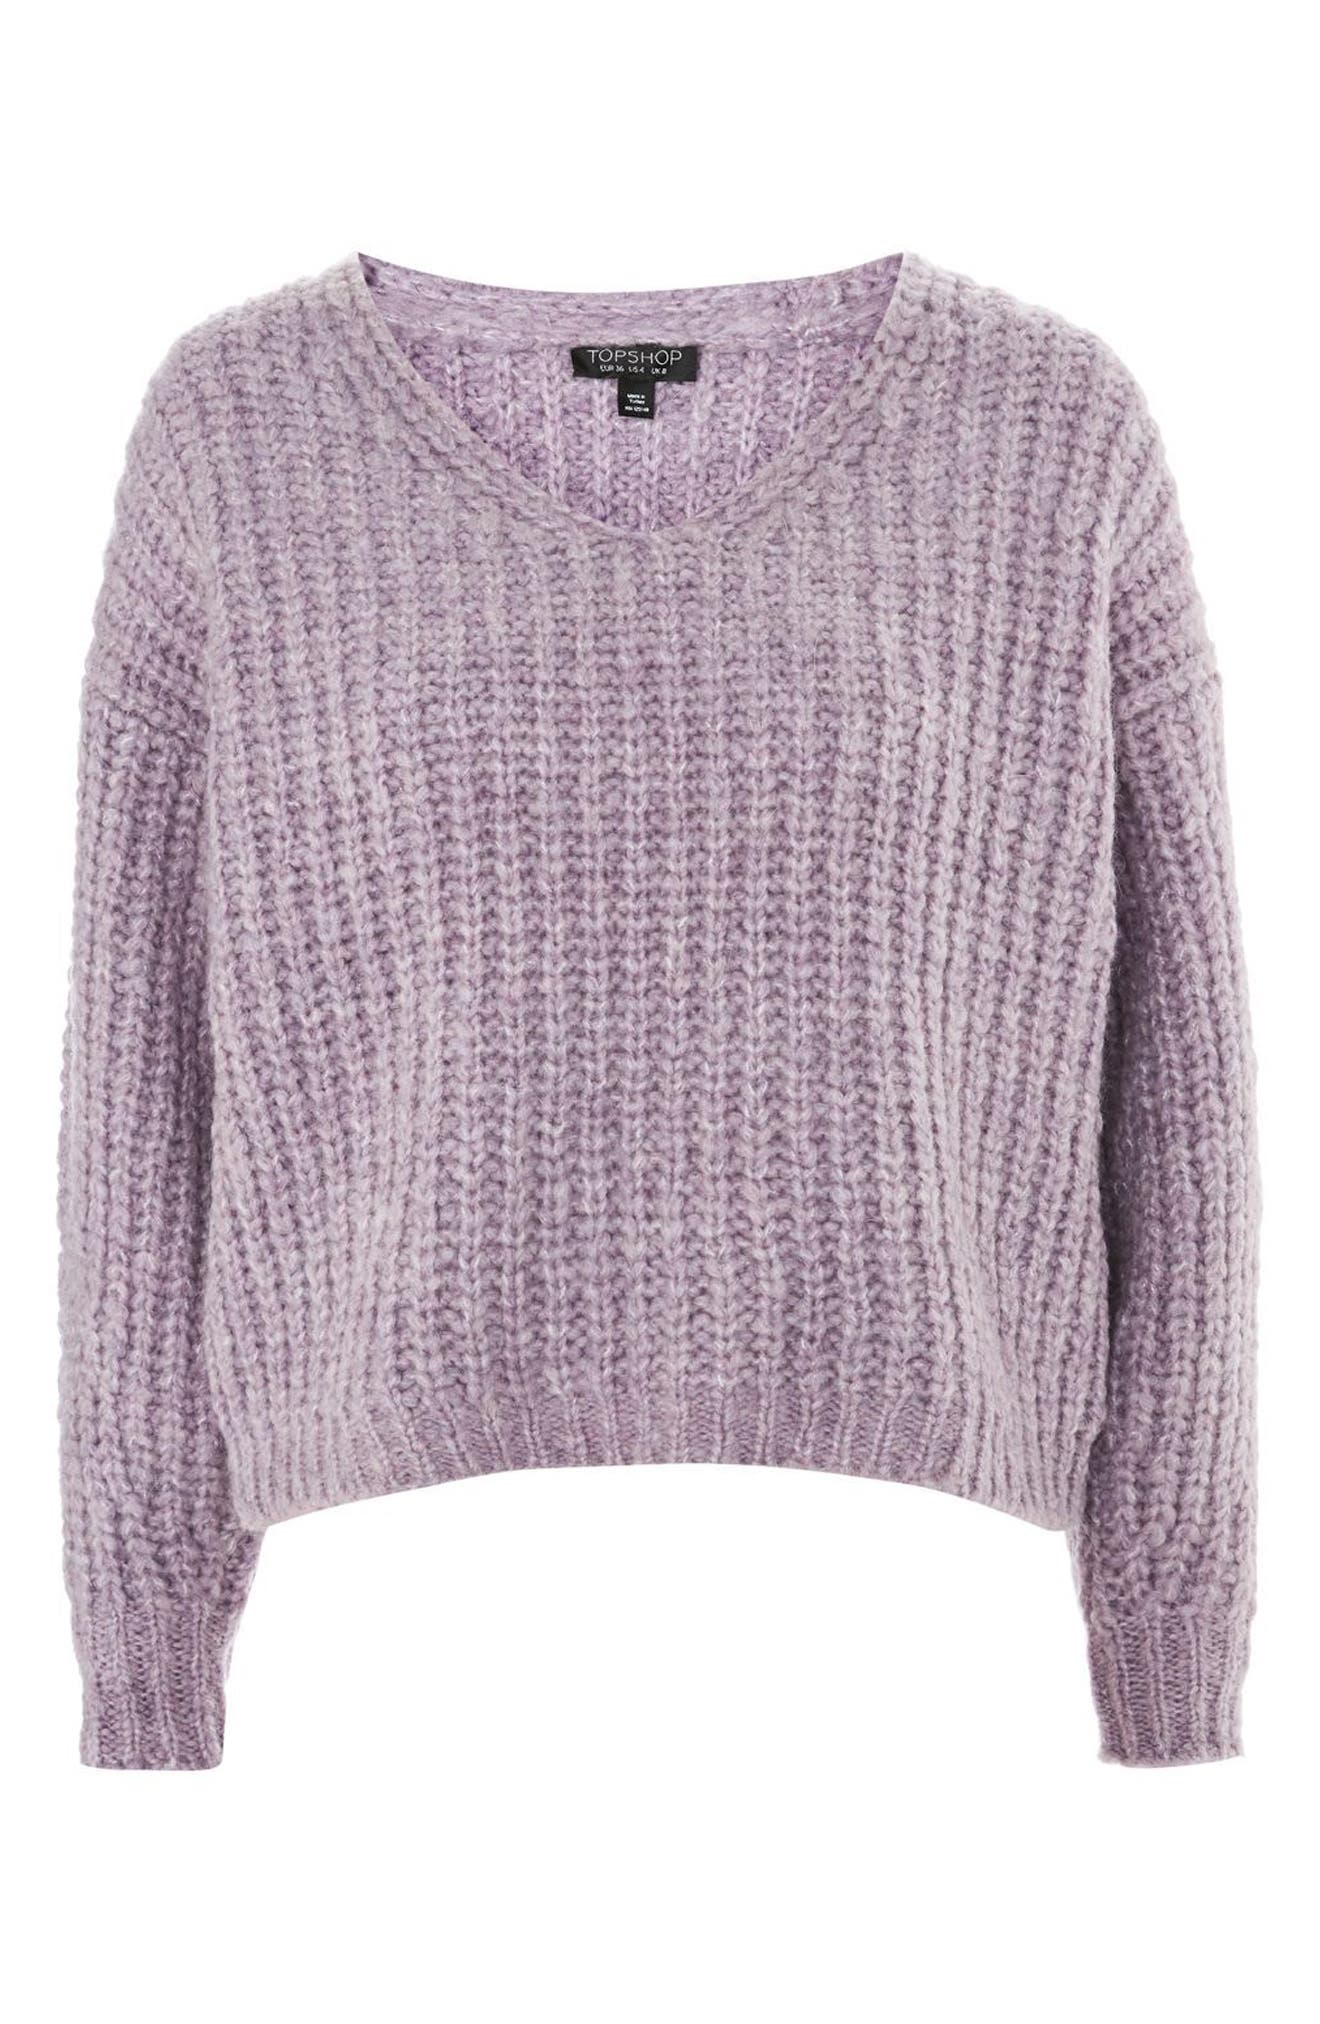 Oversized V-Neck Sweater,                             Alternate thumbnail 4, color,                             530